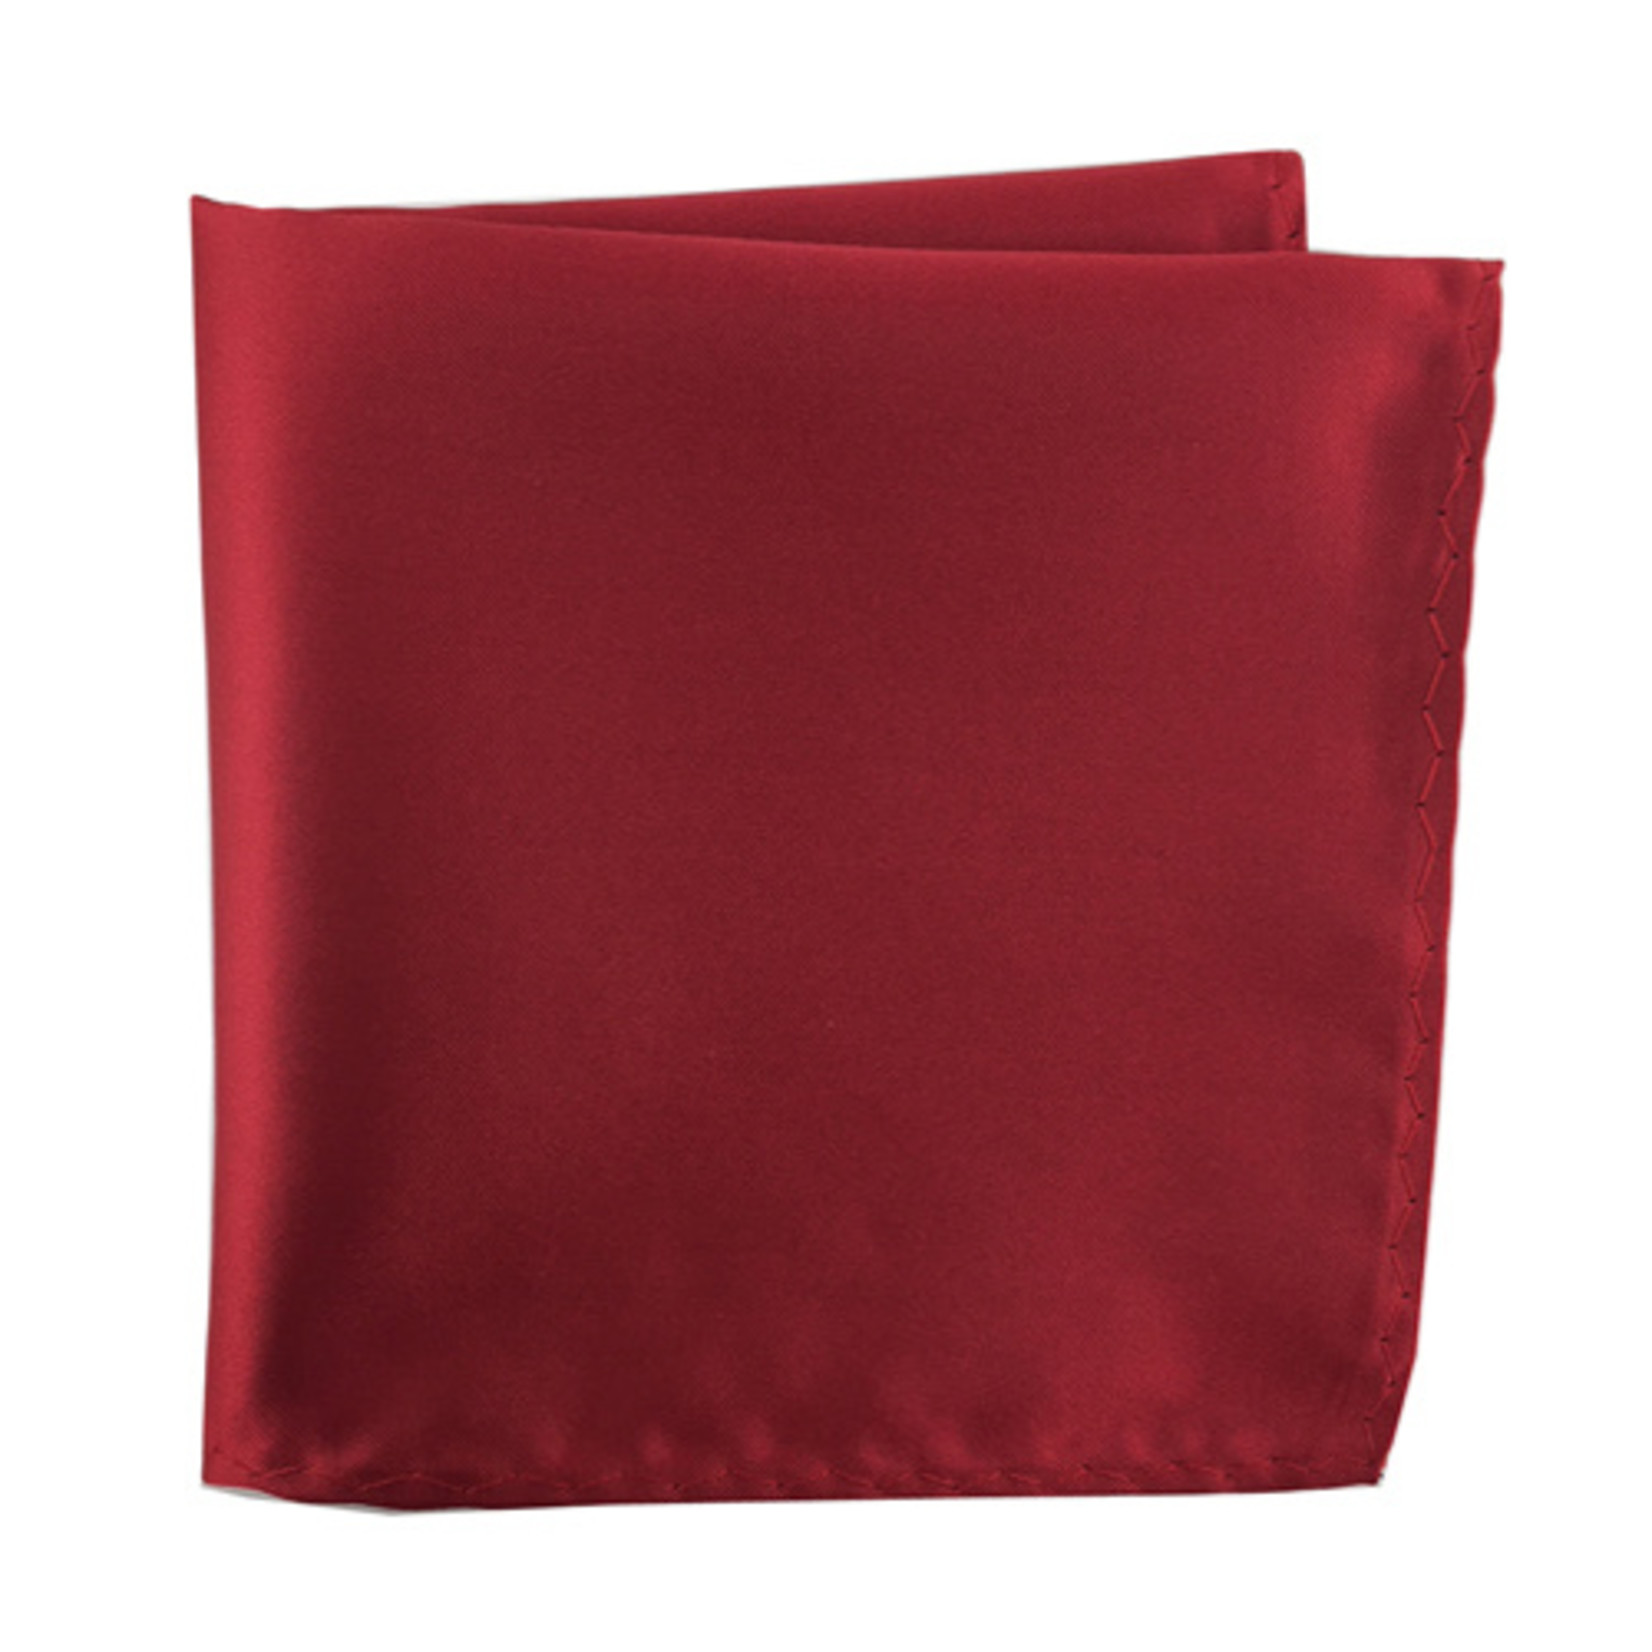 Knotz M100PSQ-31 Solid Red Pocket Square